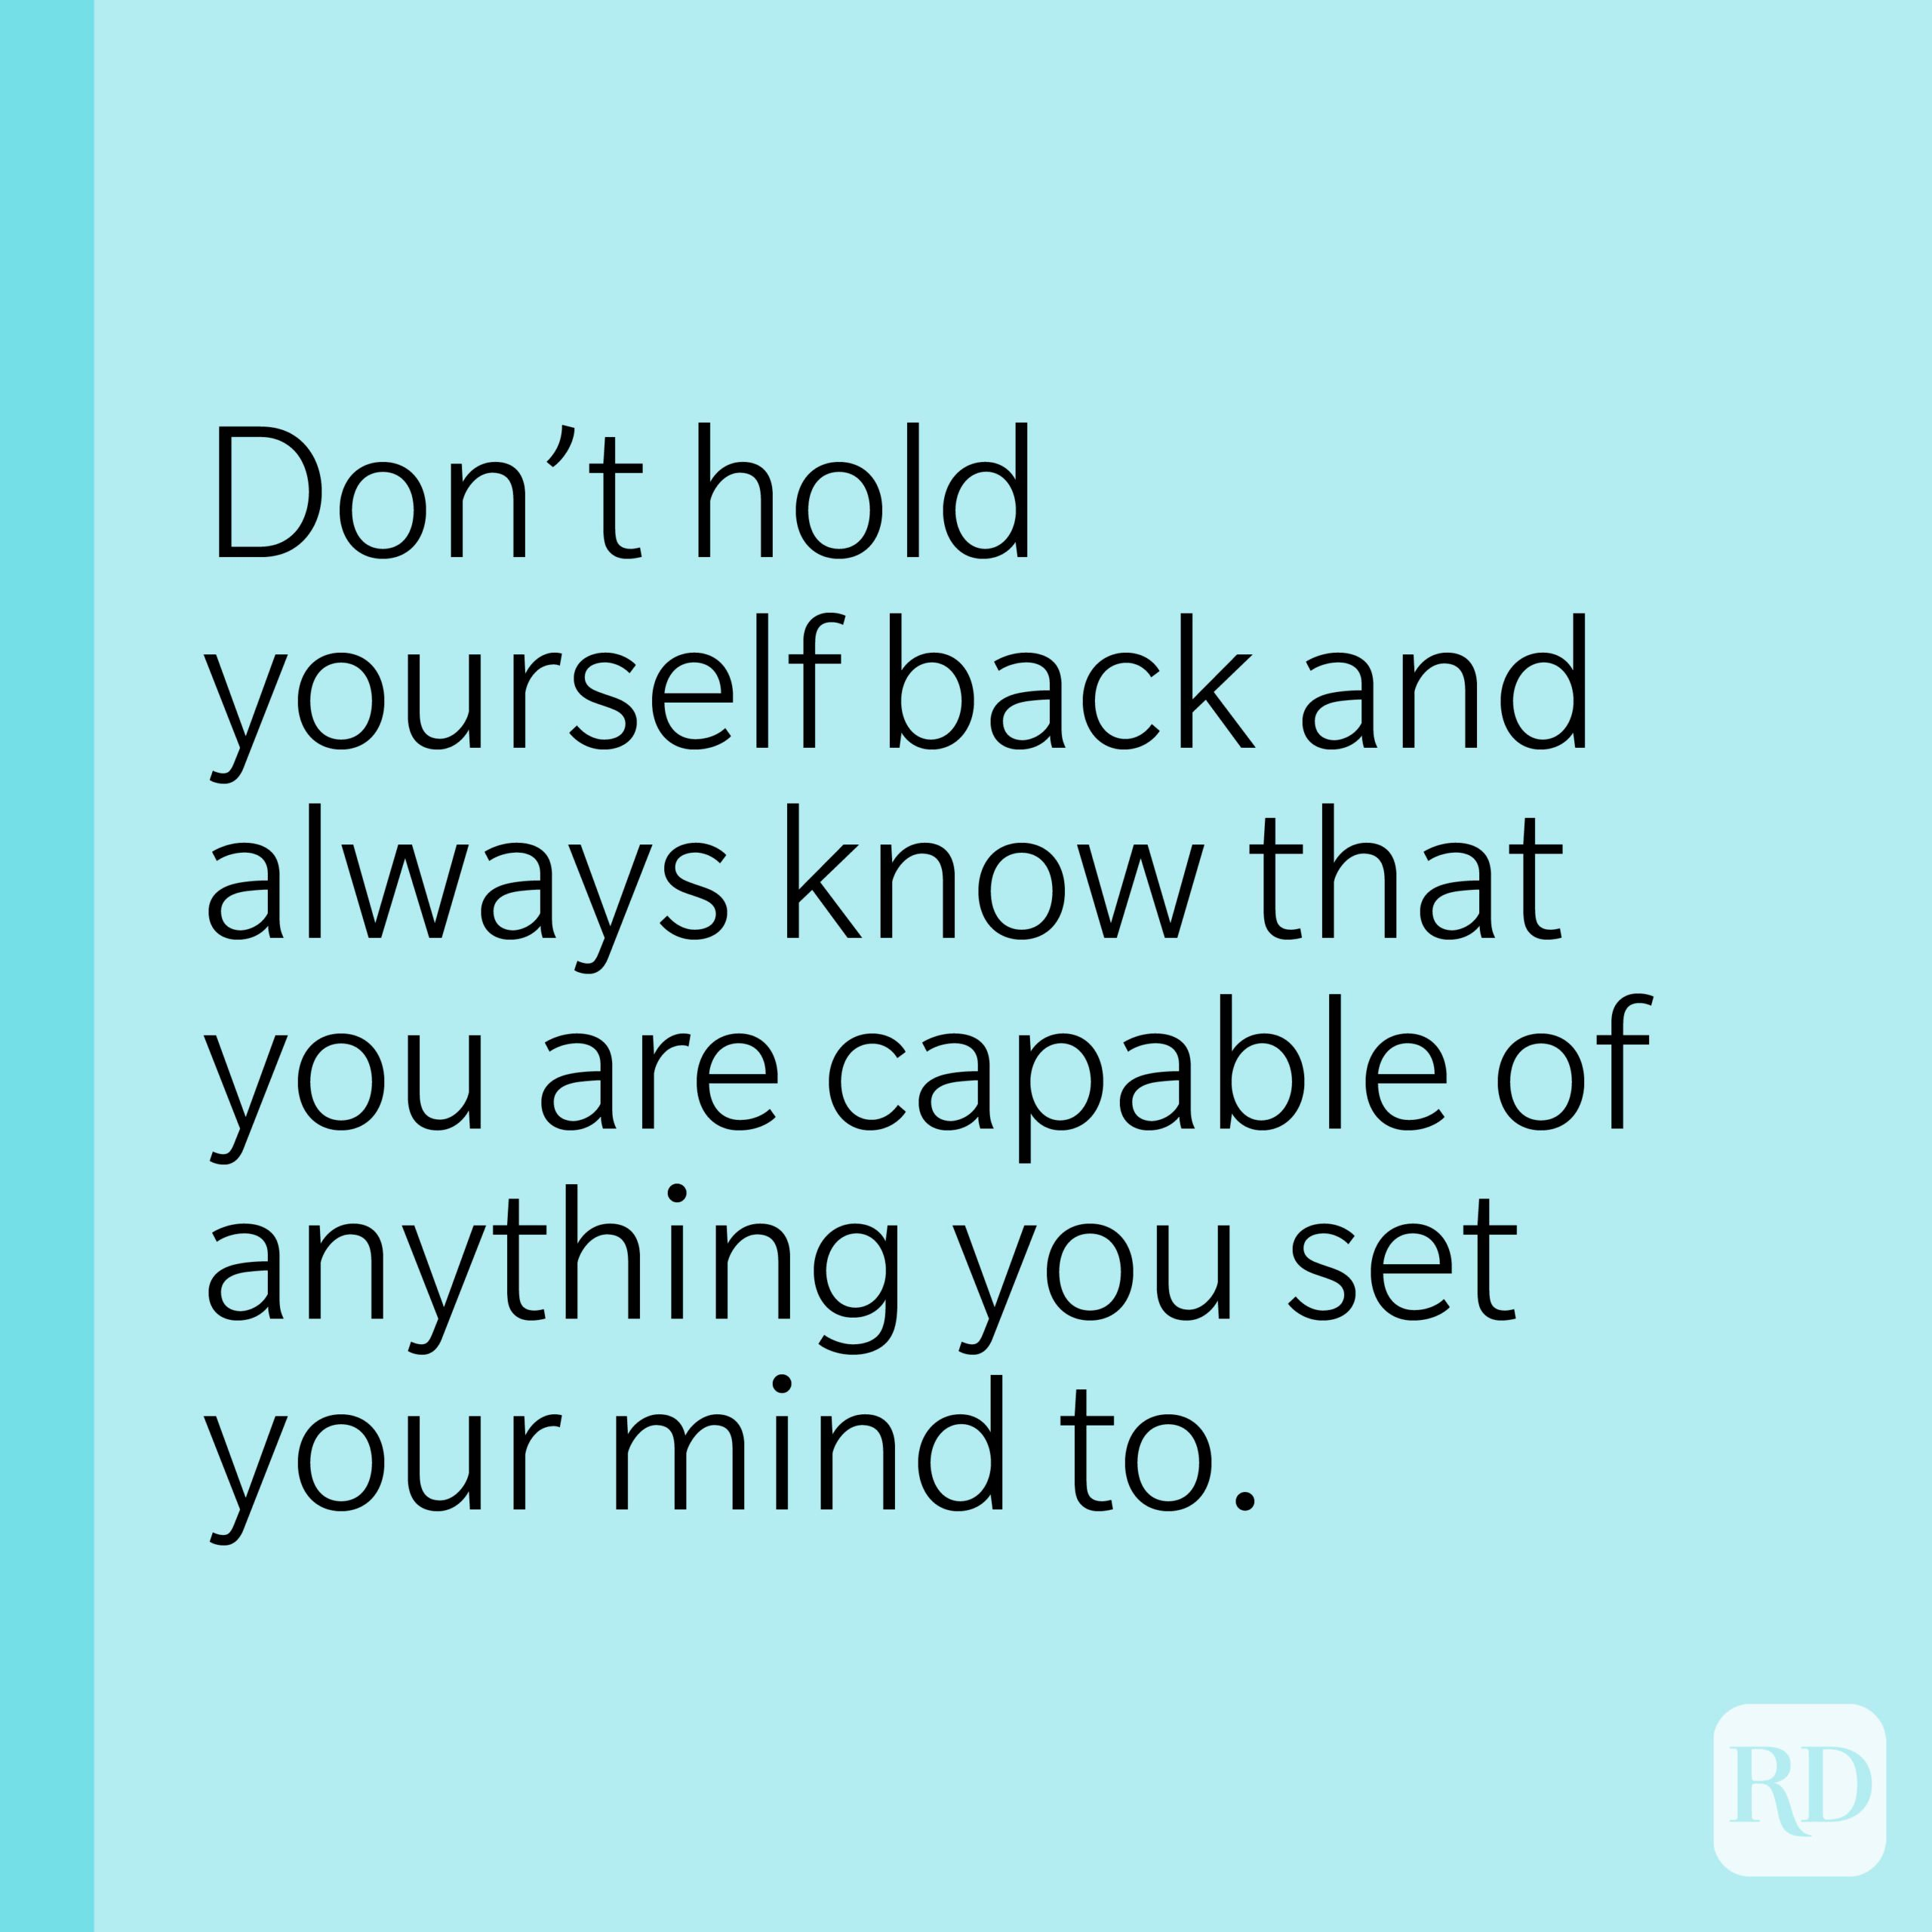 Don't hold yourself back and always know that you are capable of anything you set your mind to.